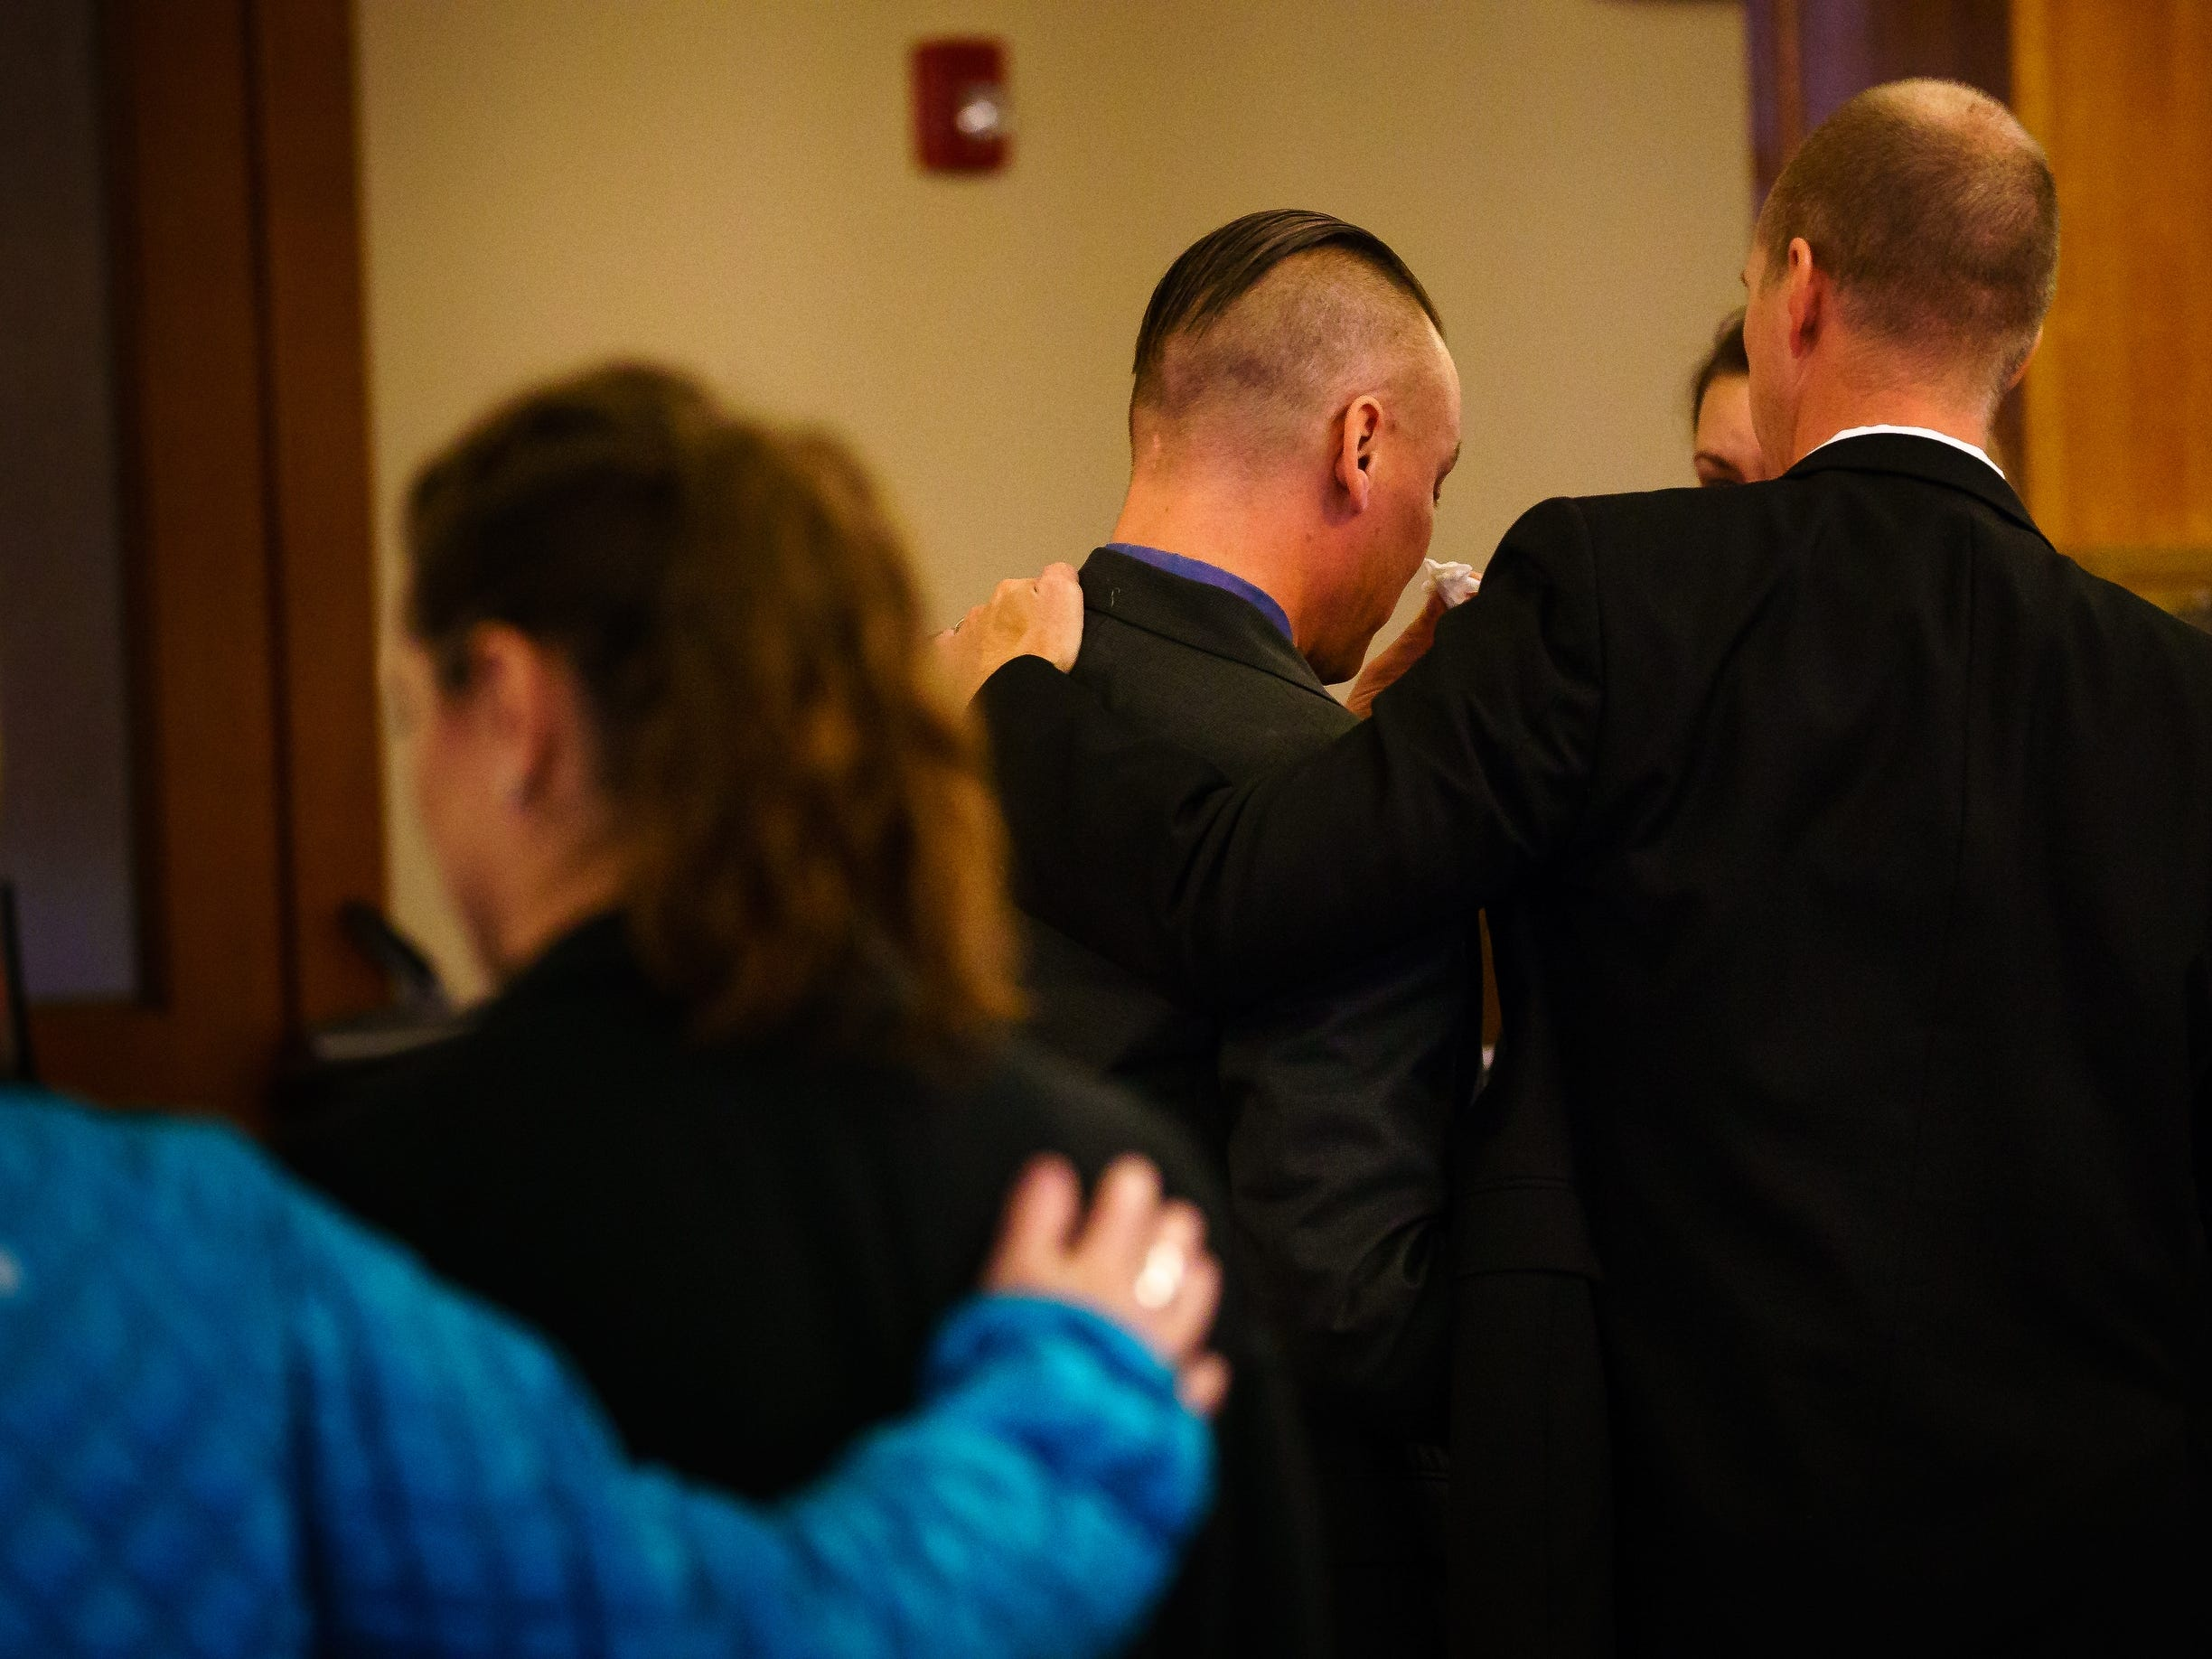 Troy Griffin, center, is congratulated by his defense lawyer, Robert Rehkemper, right, after a jury found Griffin not guilty on all counts in his marital rape trial at the Dallas County Courthouse on Thursday, Oct. 25, 2018, in Adel. Griffin's ex-wife Gina Battani accused him of repeatedly raping her during their marriage.